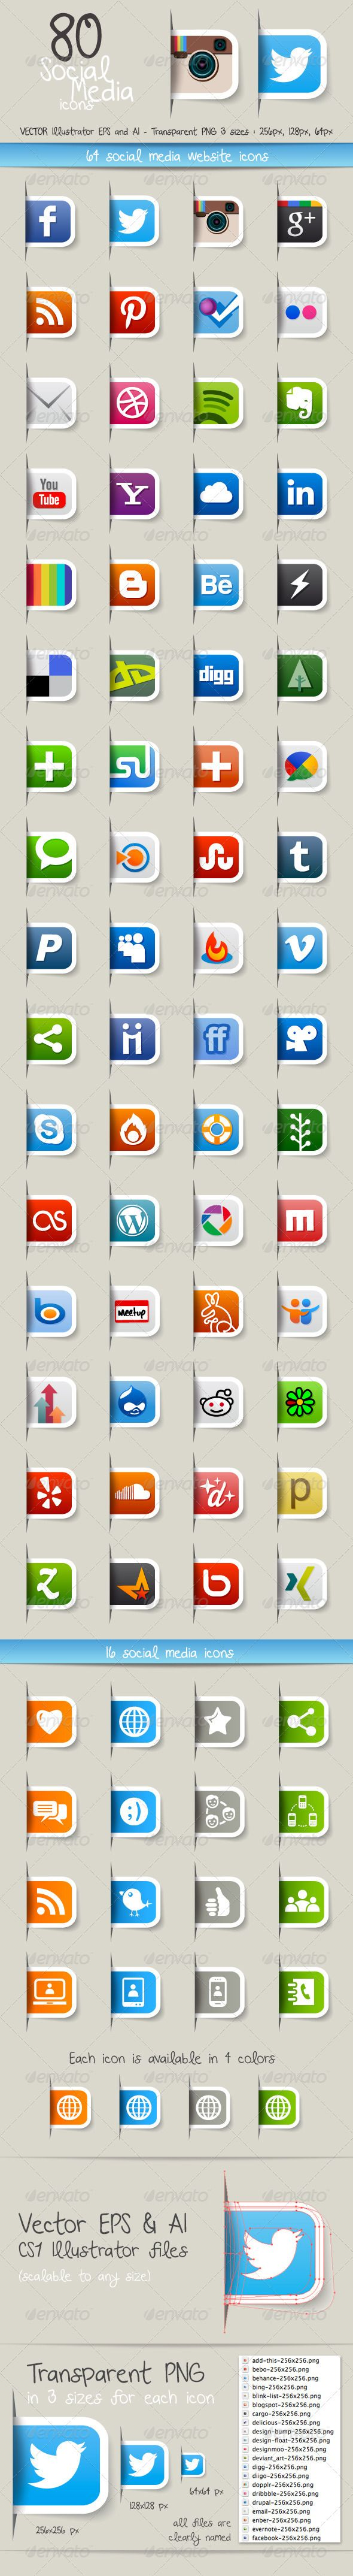 80 Social Media Icons - GraphicRiver Item for Sale